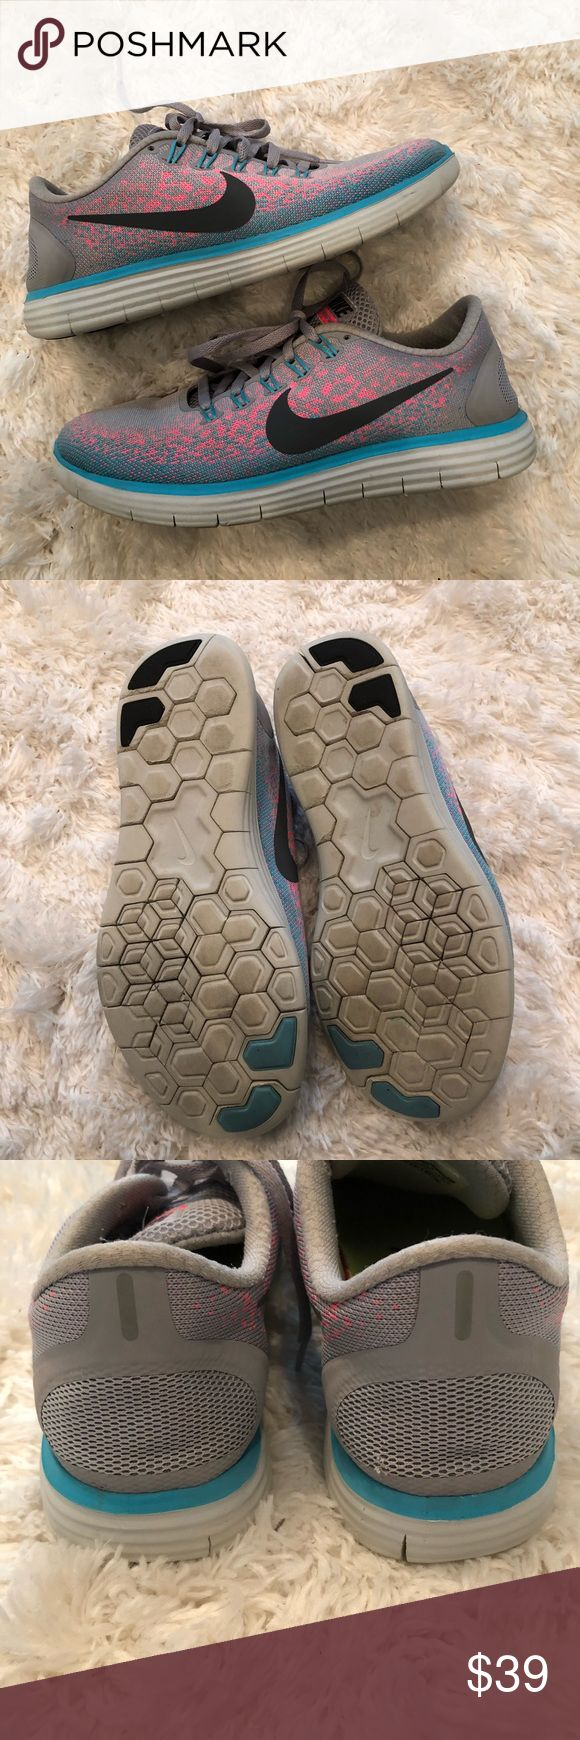 Nike Free RN Distance Running Shoe size 6.5 grey Nike Free RN Distance Running Shoe Turquoise Gray Pink Blue Size 7.5 827116-006. They fit like a 6.5 . Shoes are in good condition. Minimal wear . Great for working out Nike Shoes Sneakers